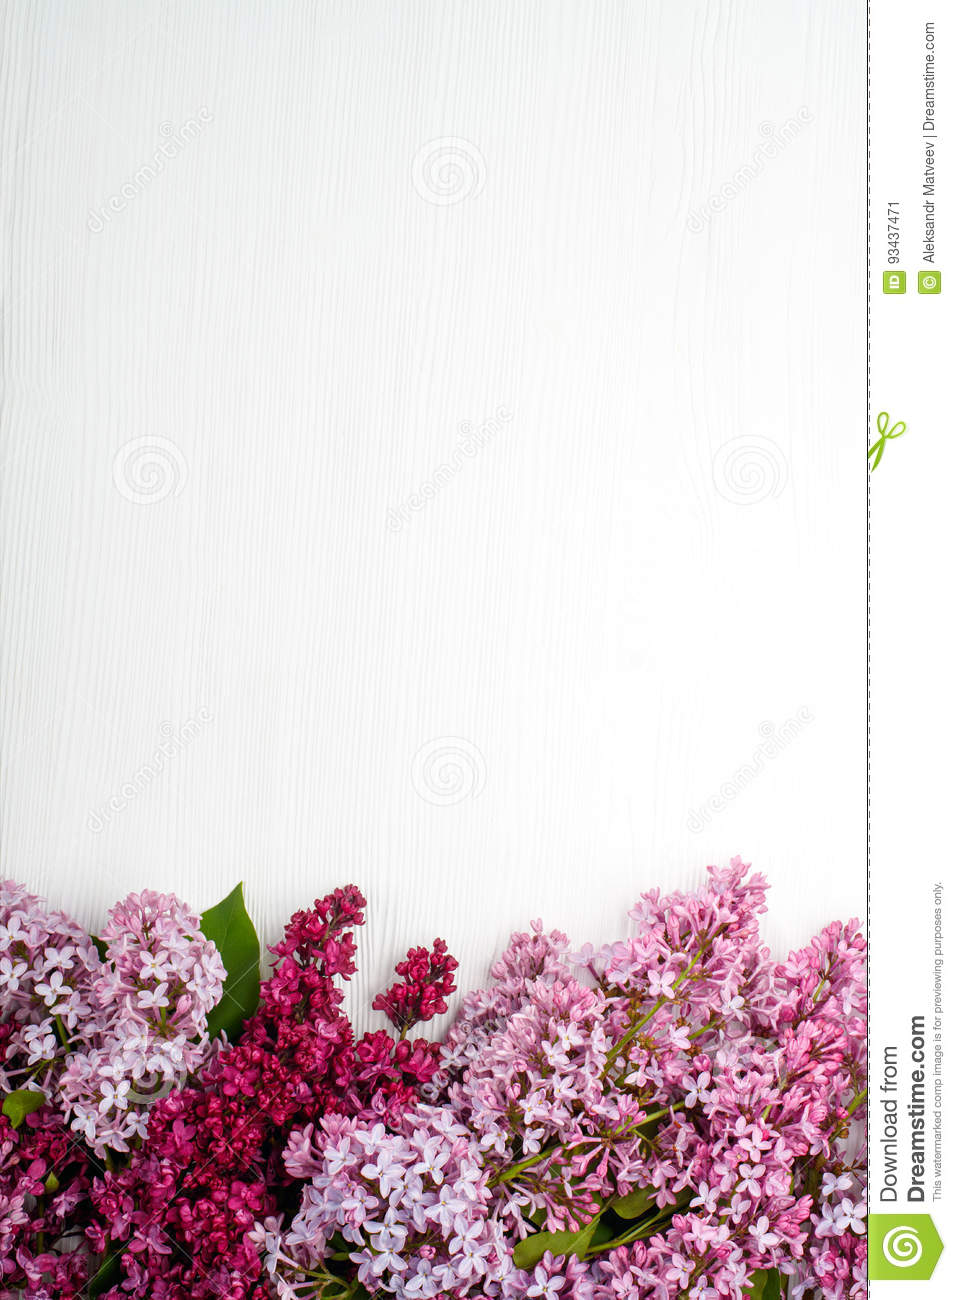 Spring flowers lilac flowers on white wooden background top view spring flowers lilac flowers on white wooden background top view flat lay copy space mightylinksfo